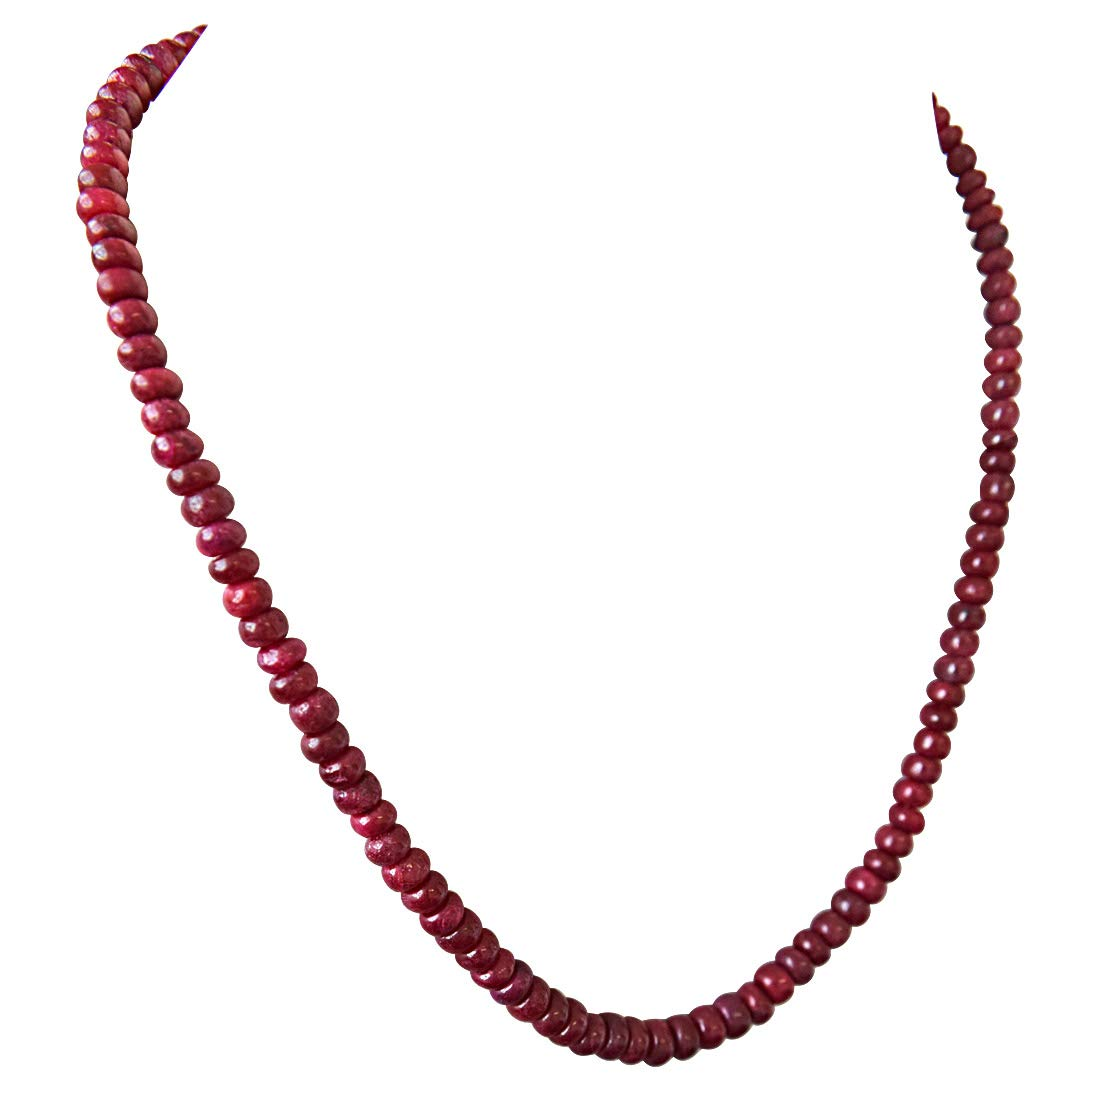 Stunning Surprise - Single Line Real Ruby Beads Necklace for Women (SN115)